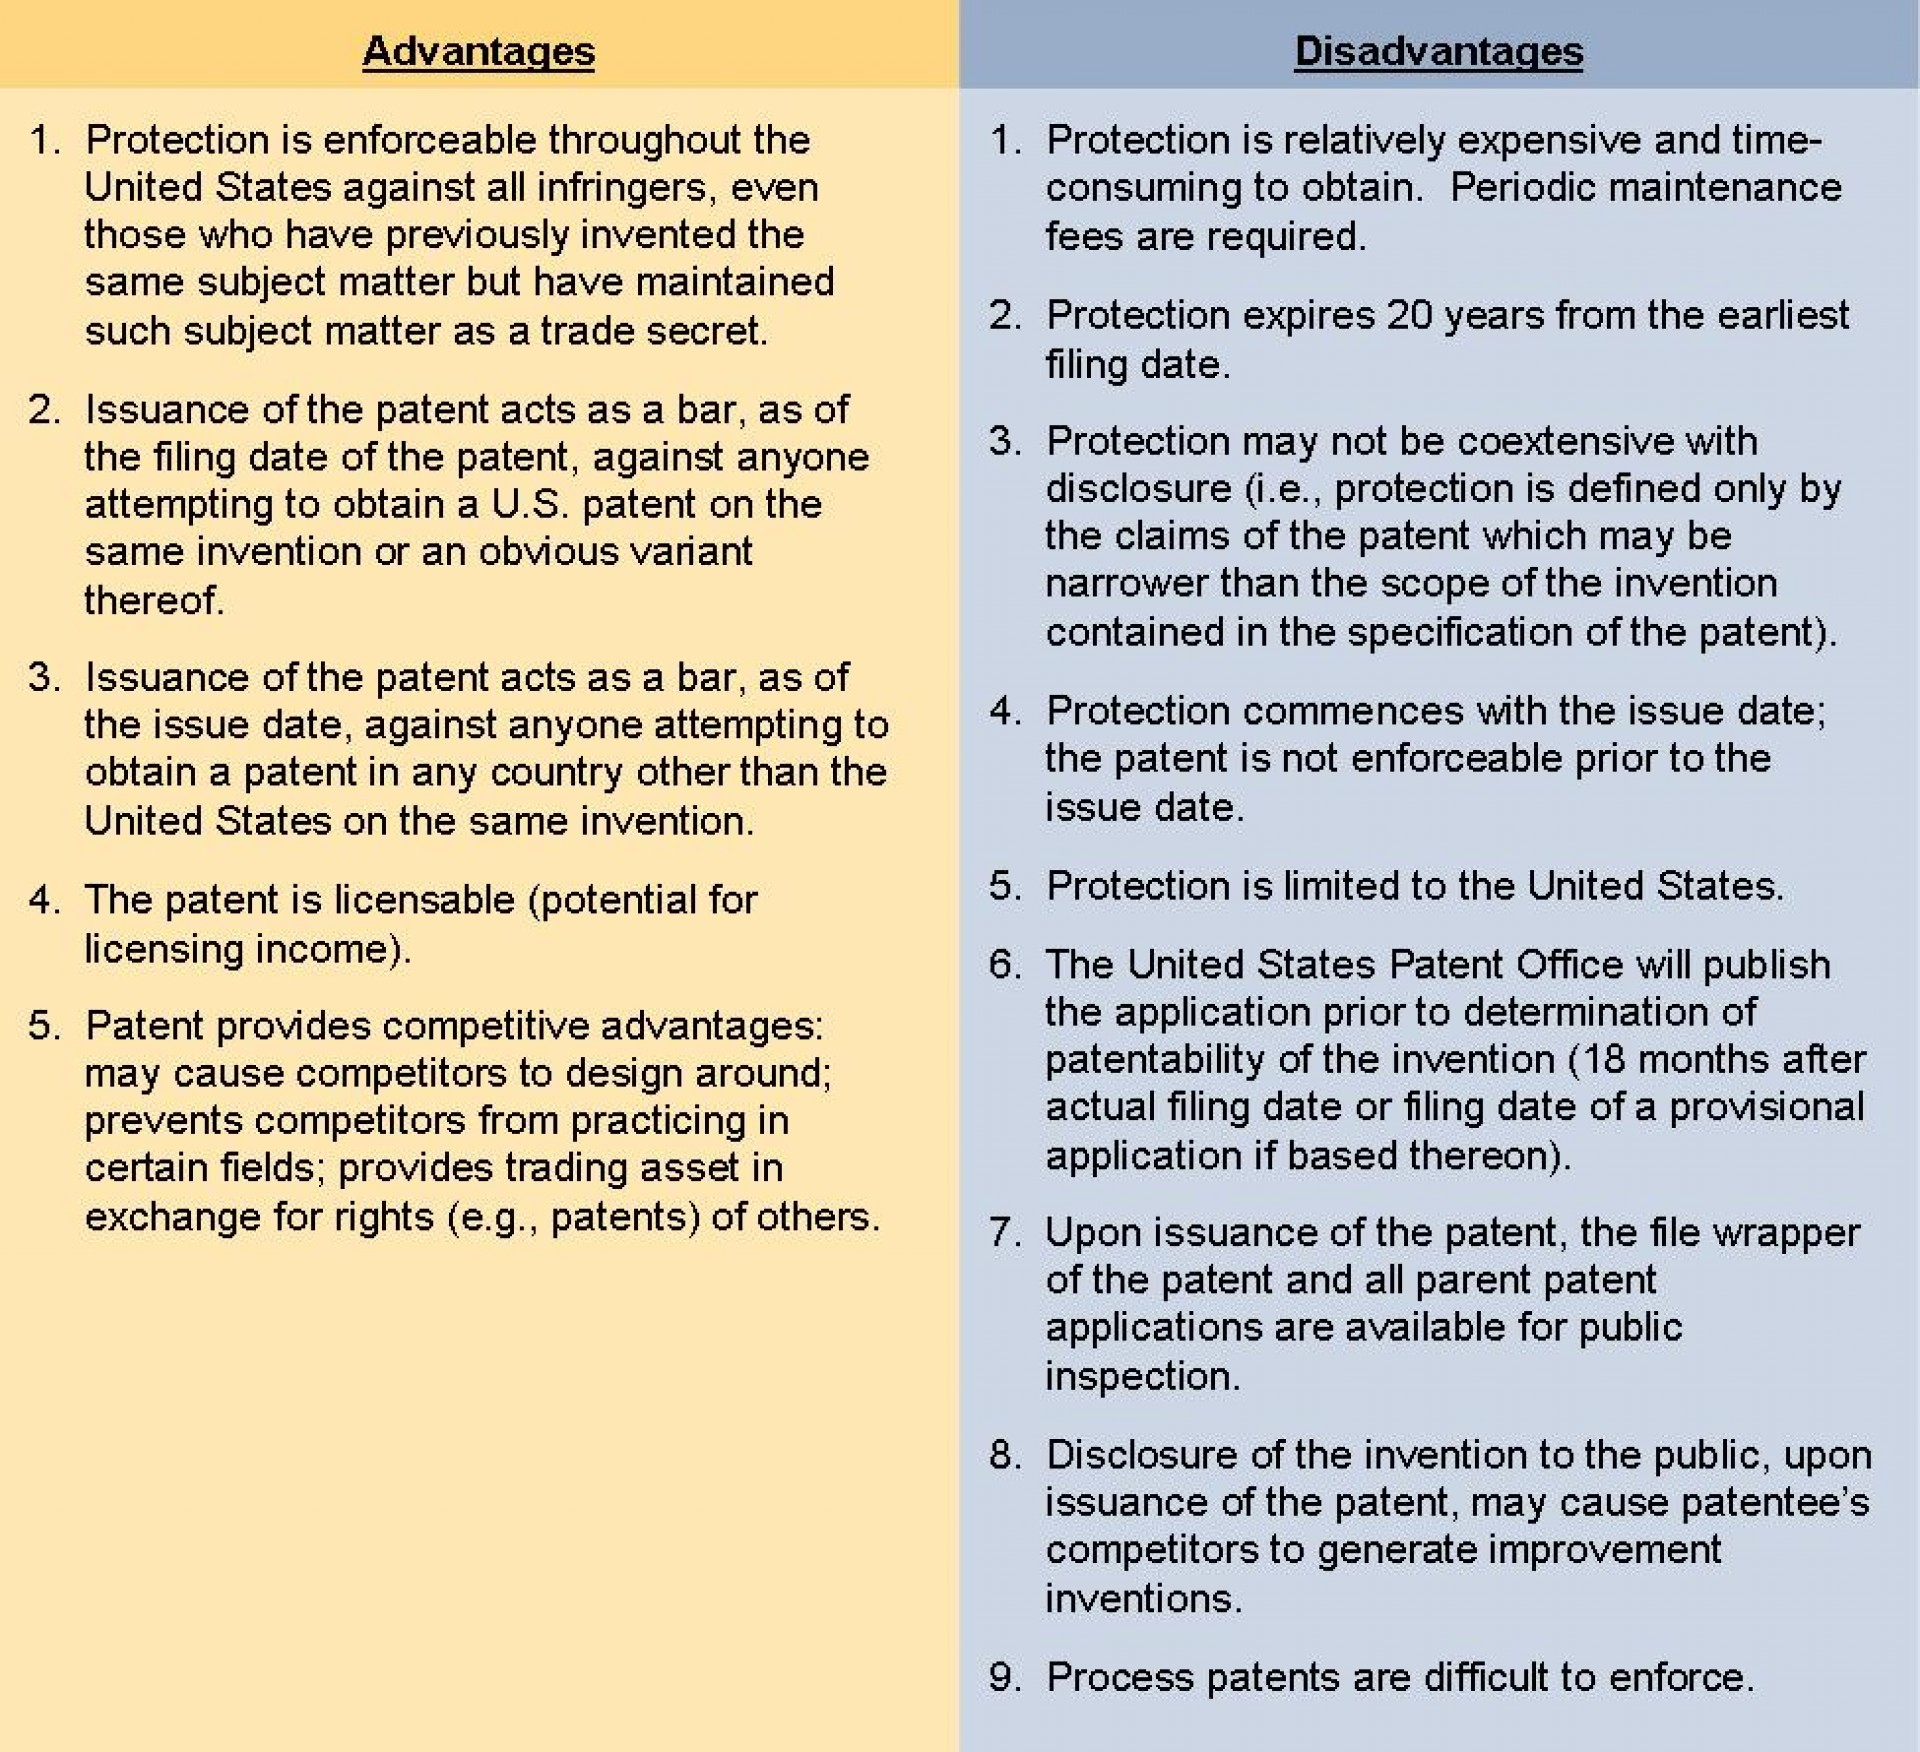 002 News87pic2 Advantages And Disadvantages Of Technology Essay Striking In Kannada Modern 1920